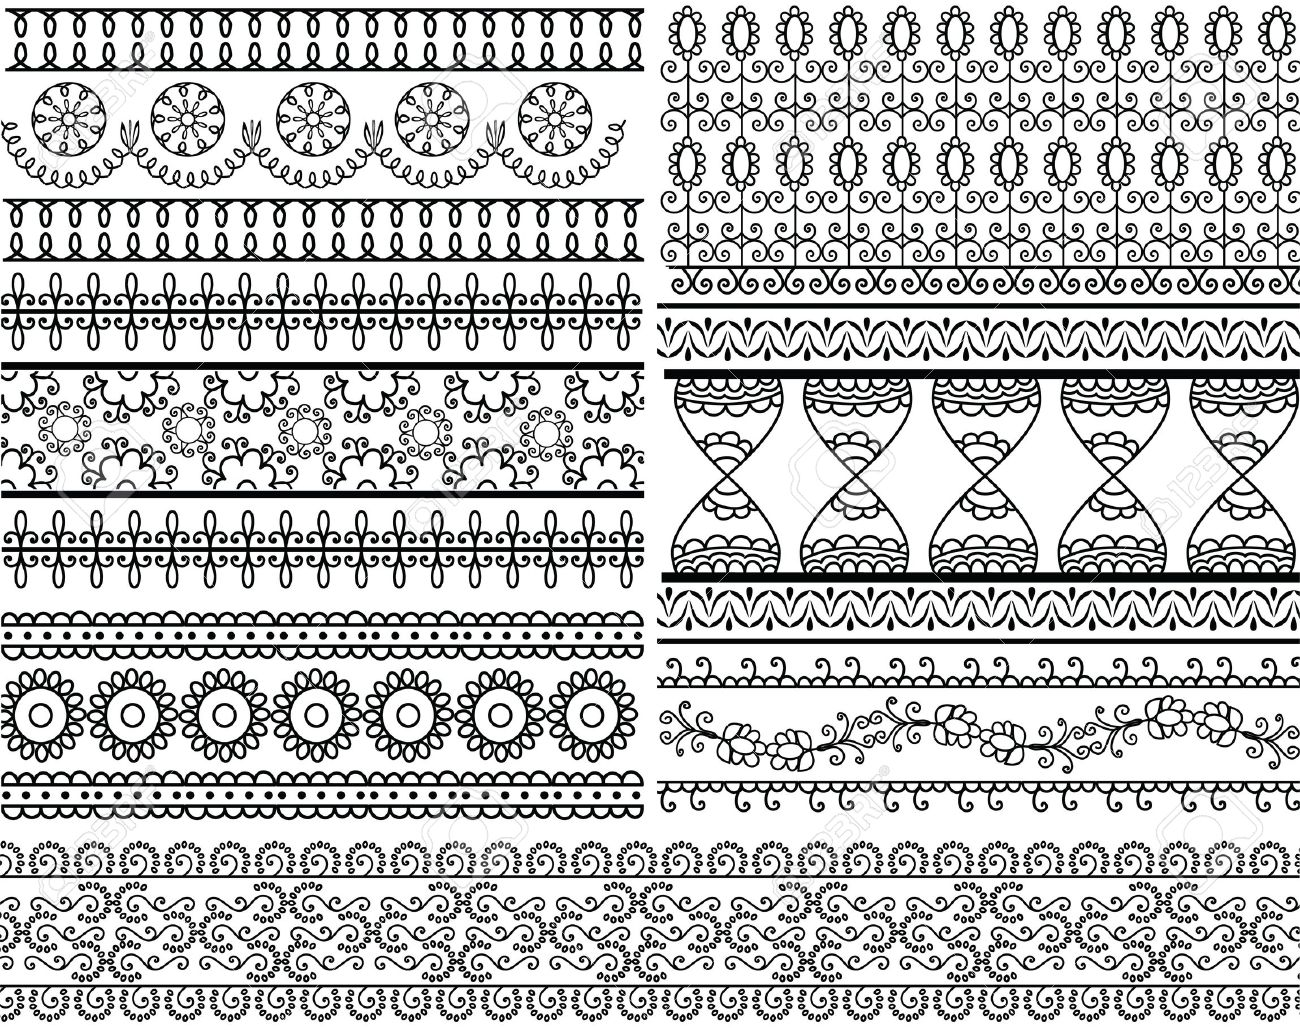 Very Detail Henna Art Inspired Border Designs Royalty Free Cliparts